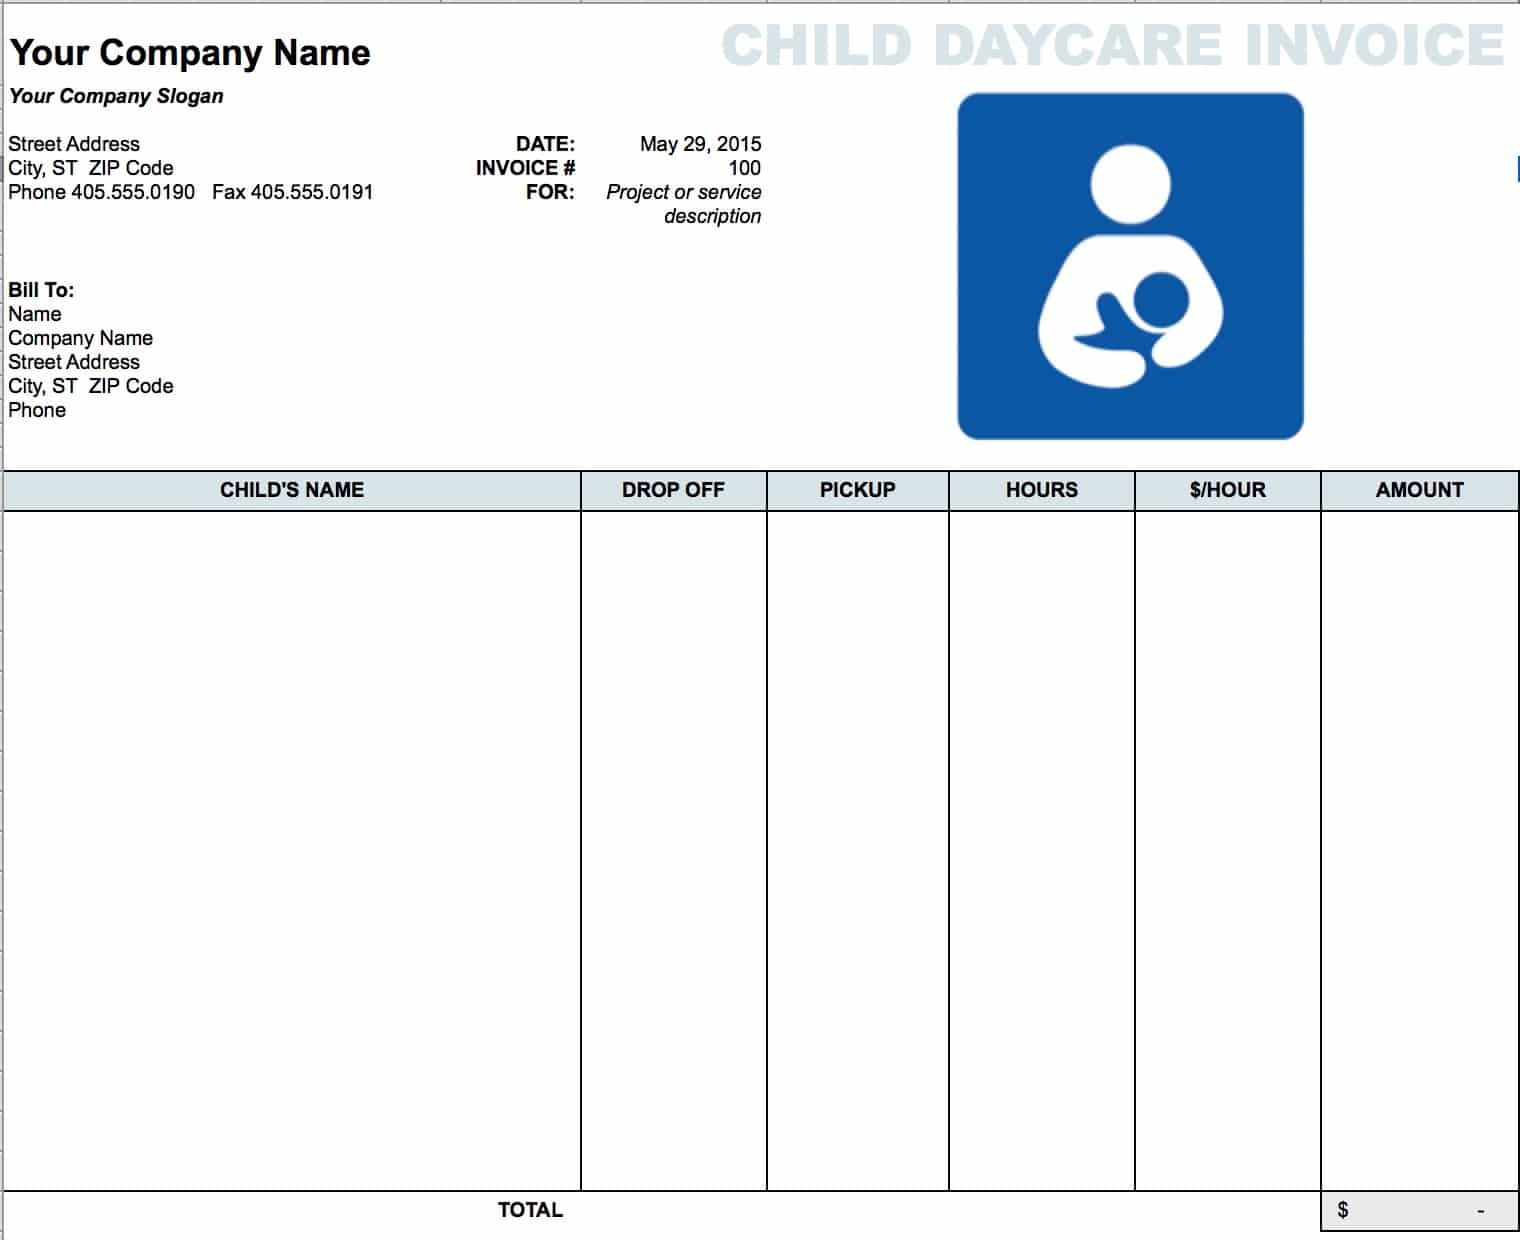 Free Daycare Child Invoice Template Excel PDF Word Doc - Sample billing invoice excel for service business